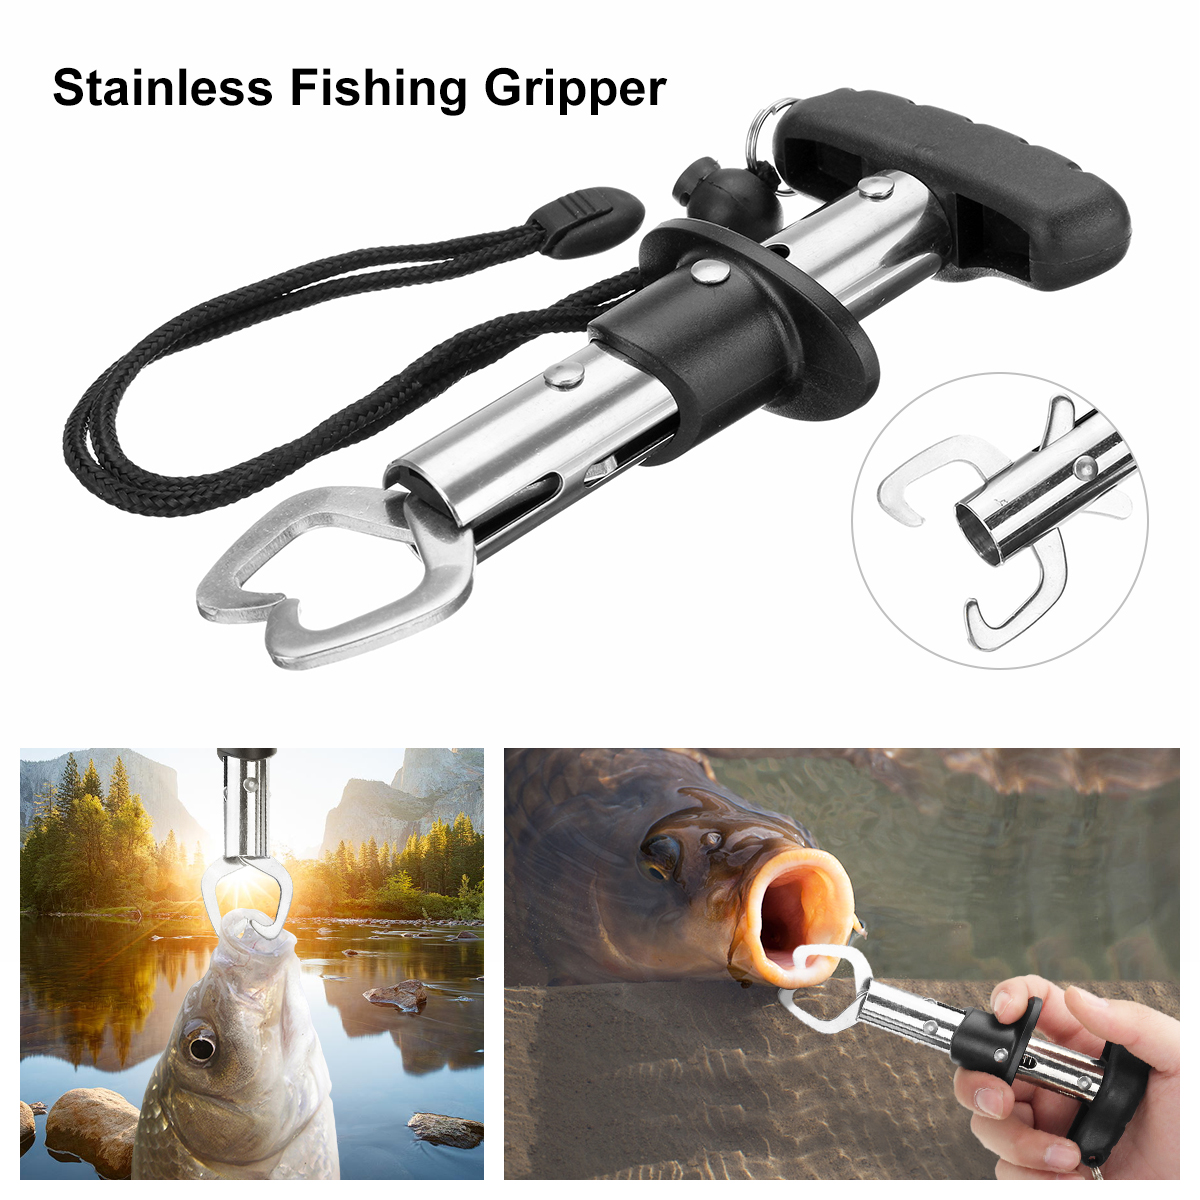 Stainless Steel Fishing Gripper Fish Lip Gripper Scale Grip Holder Boga Grabber Scale Tool